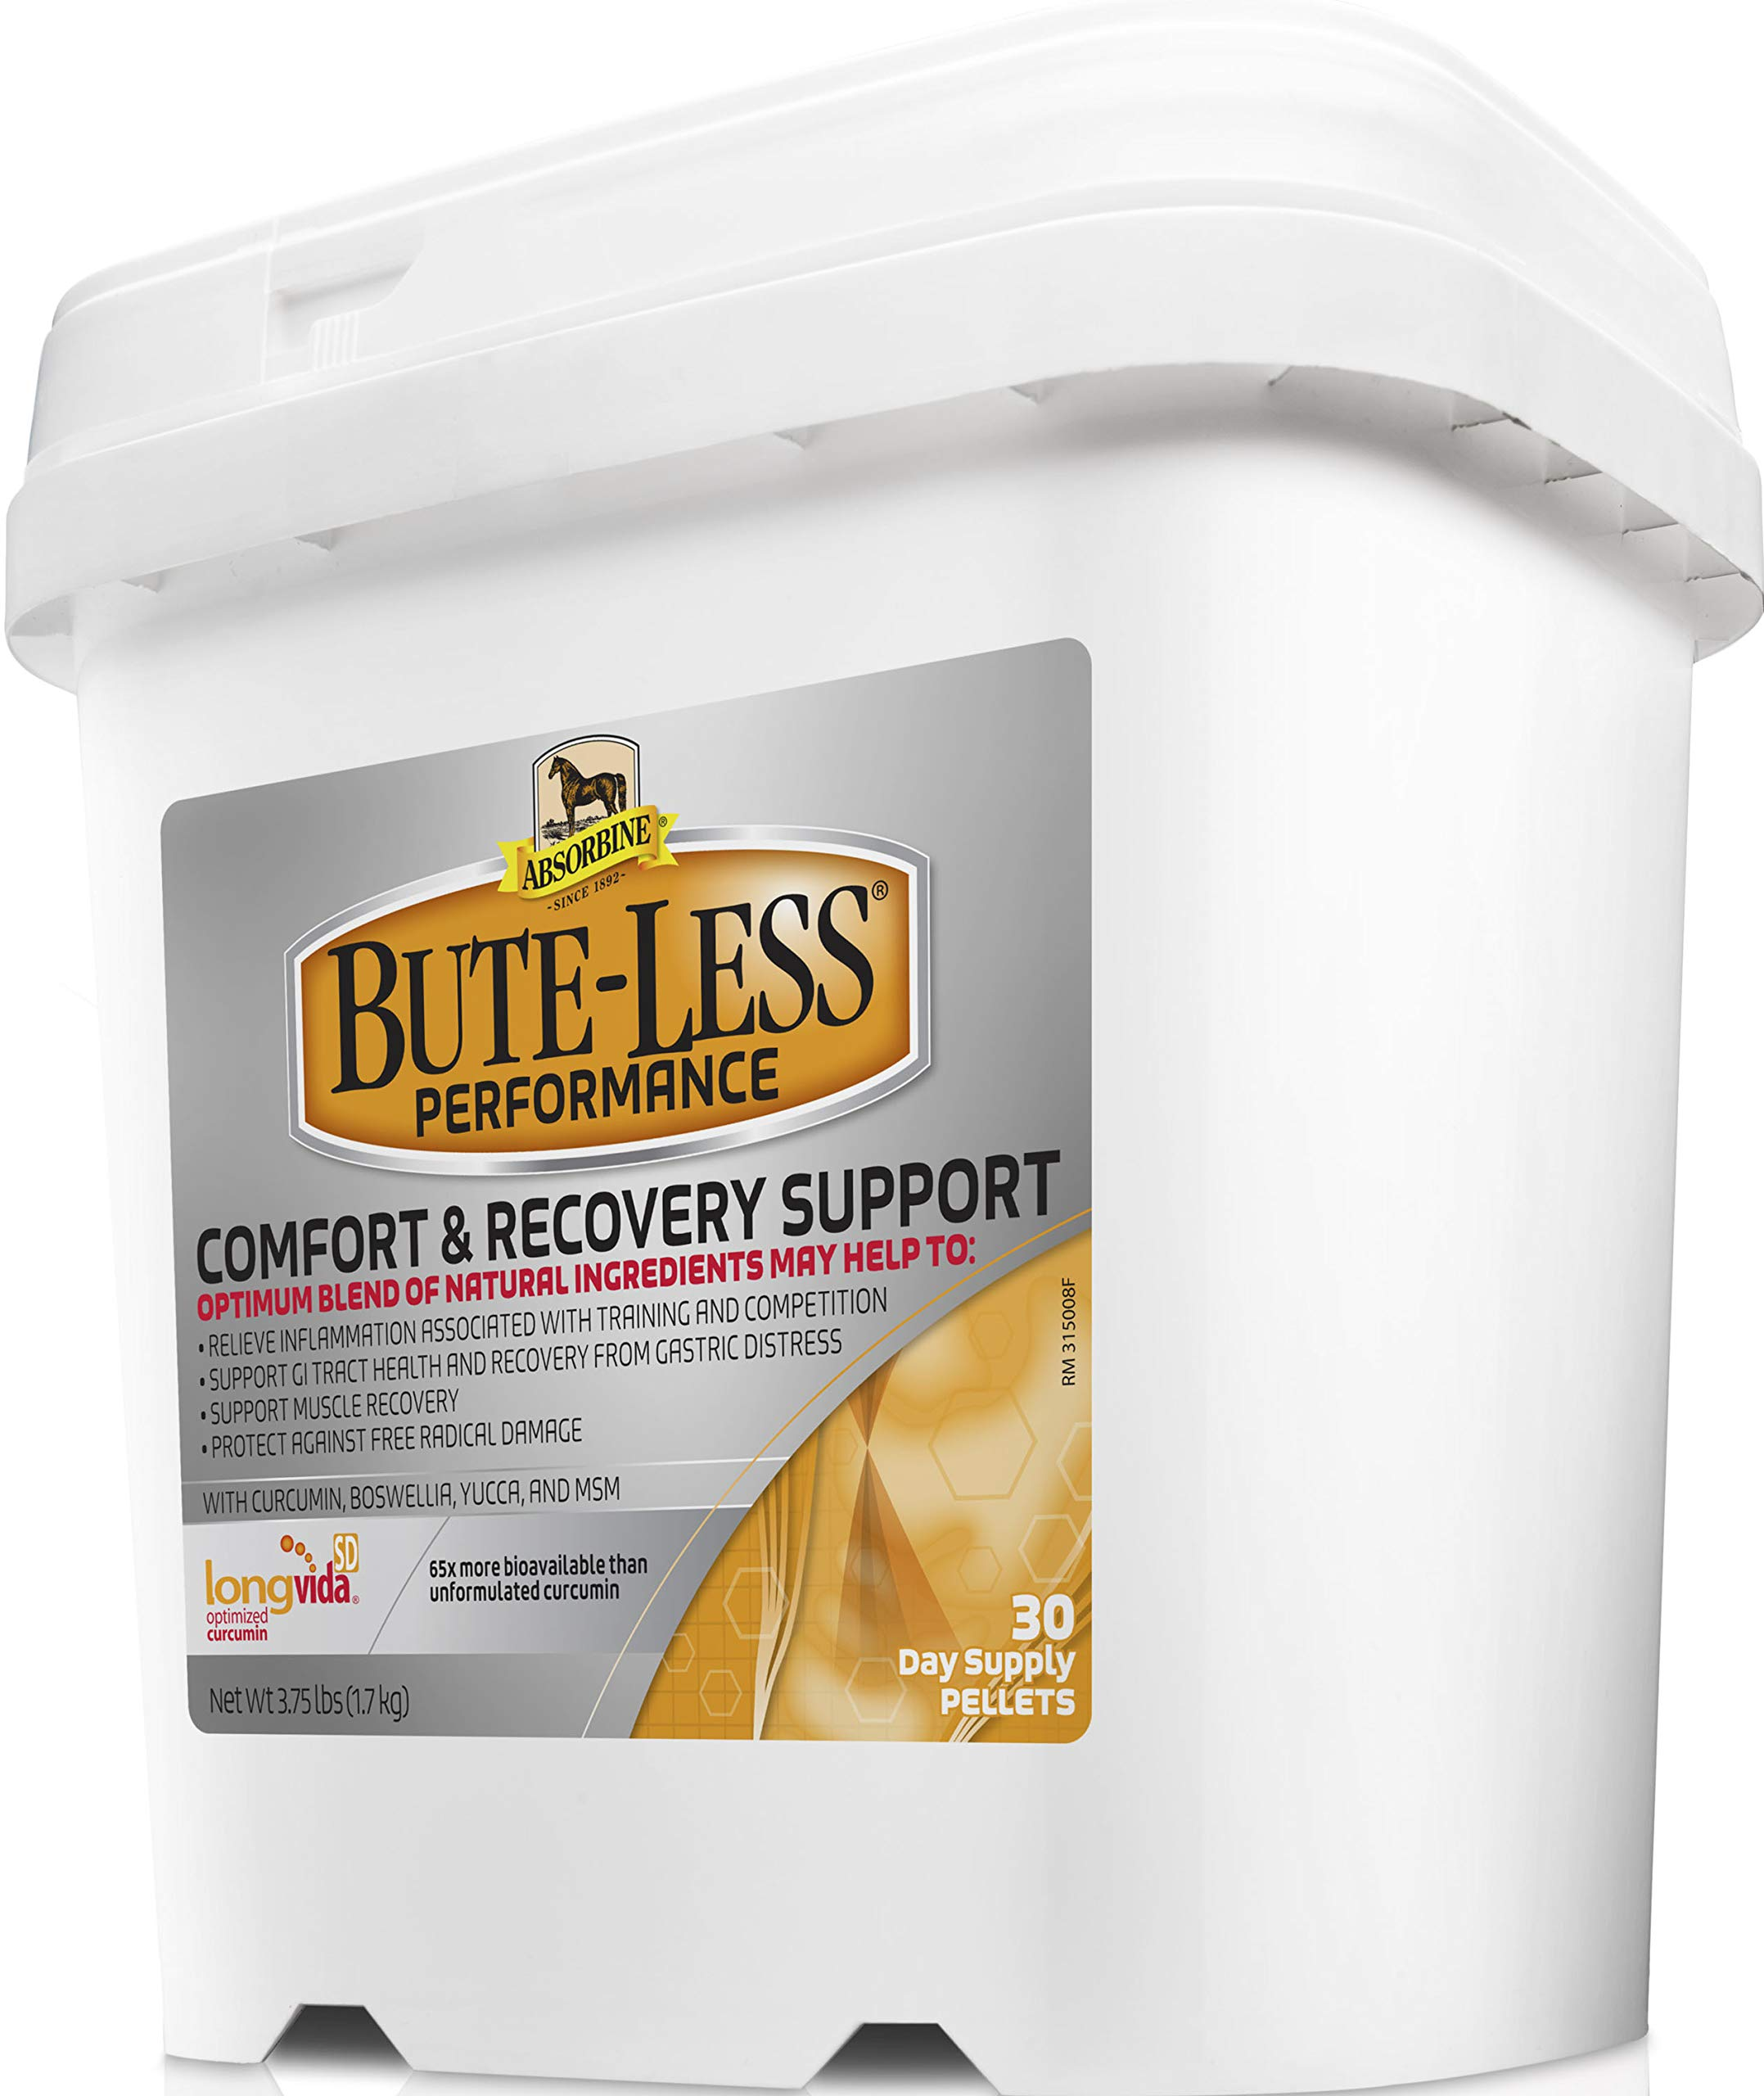 Absorbine Bute Less Performance Pellet 3 75lb by Absorbine (Image #1)